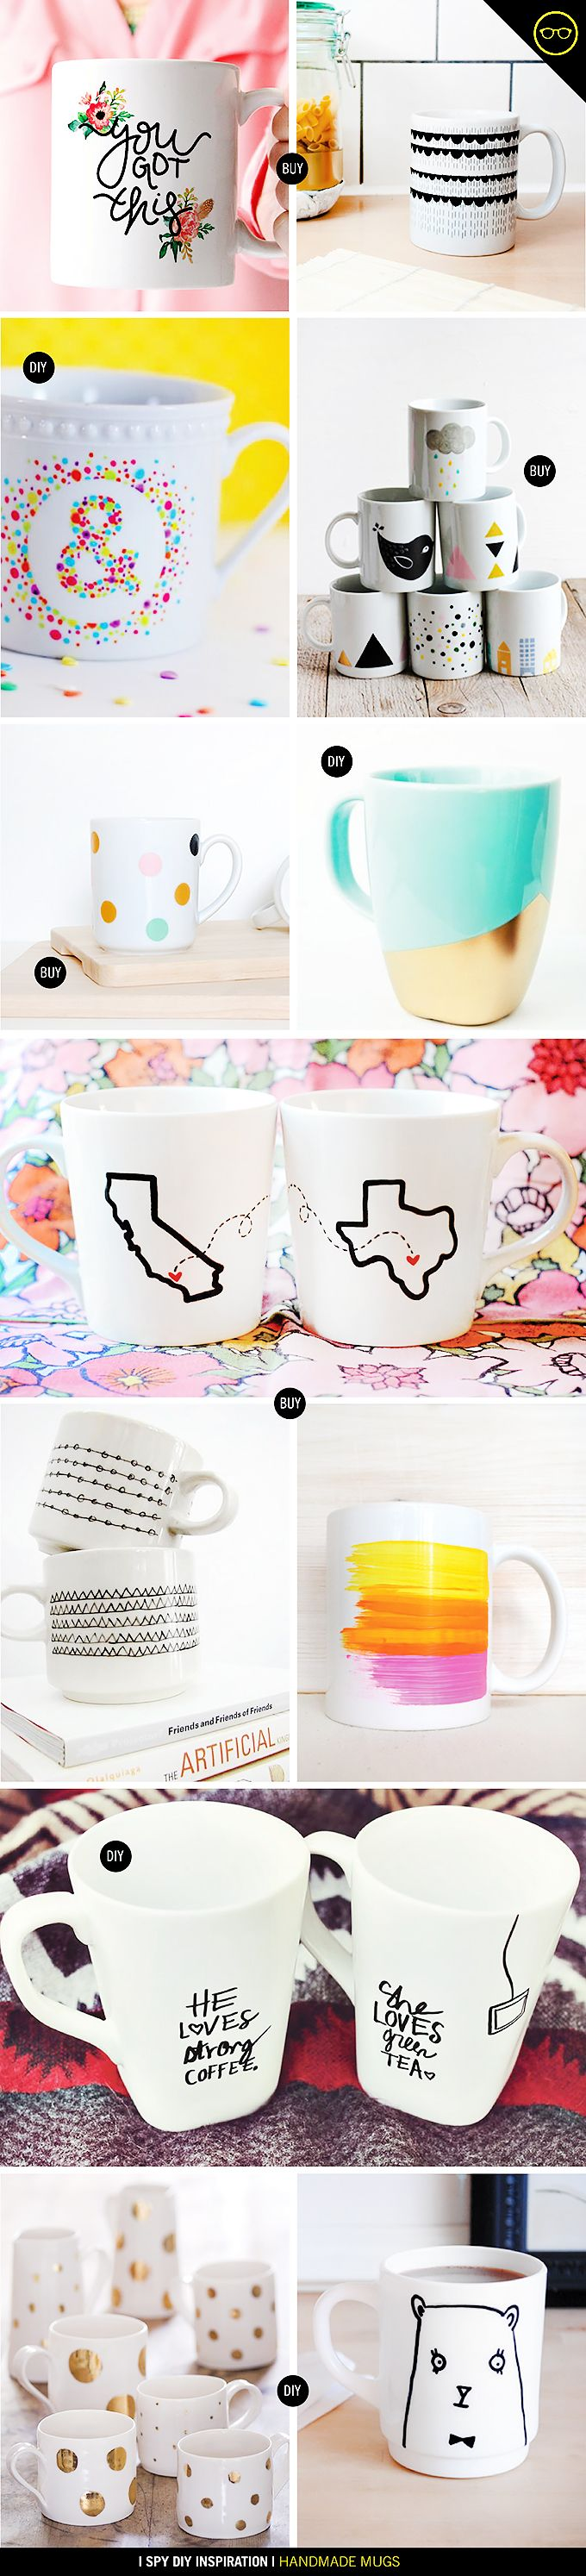 DIY INSPIRATION | Handmade Mugs | I SPY DIY